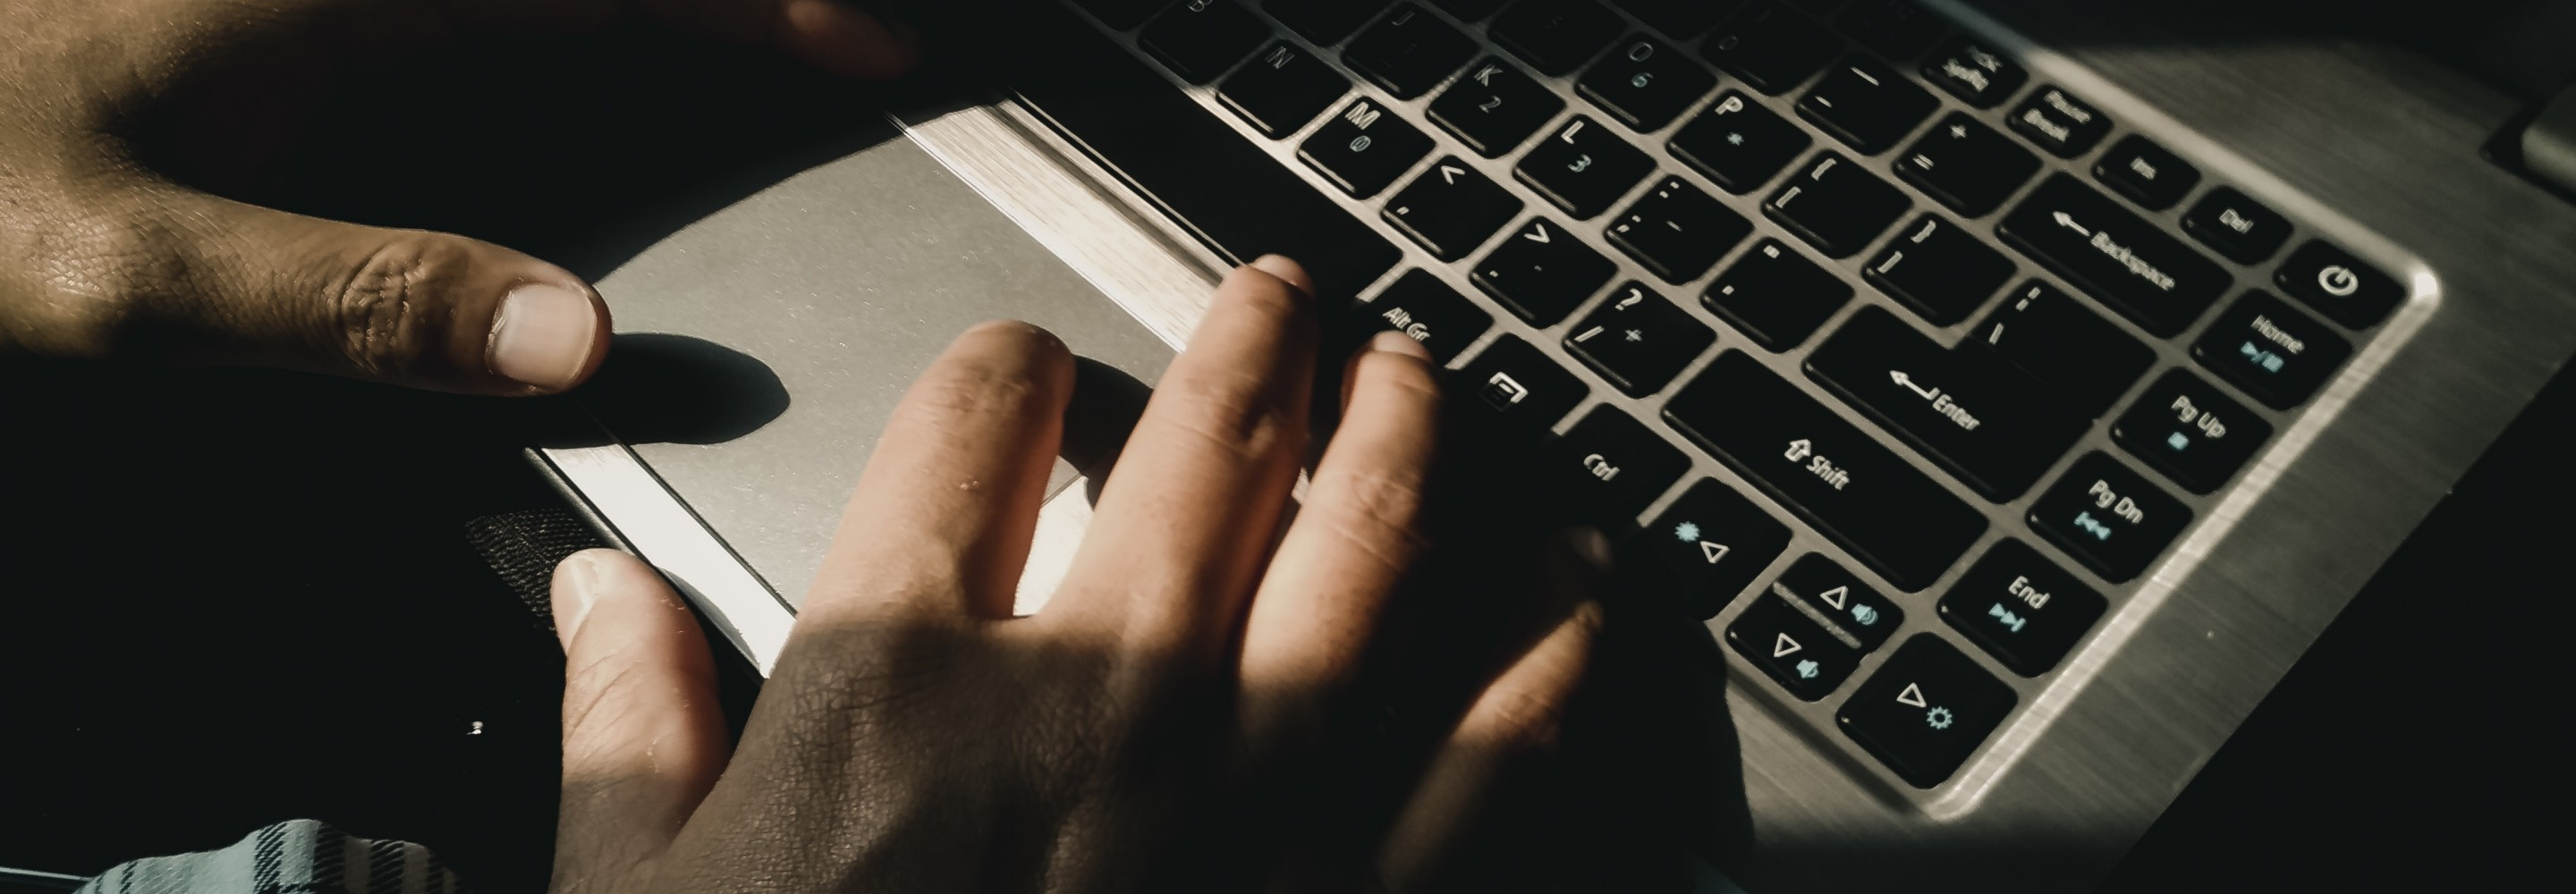 Photo of hands typing on a laptop; Photo by Yudi Indrawan on Unsplash